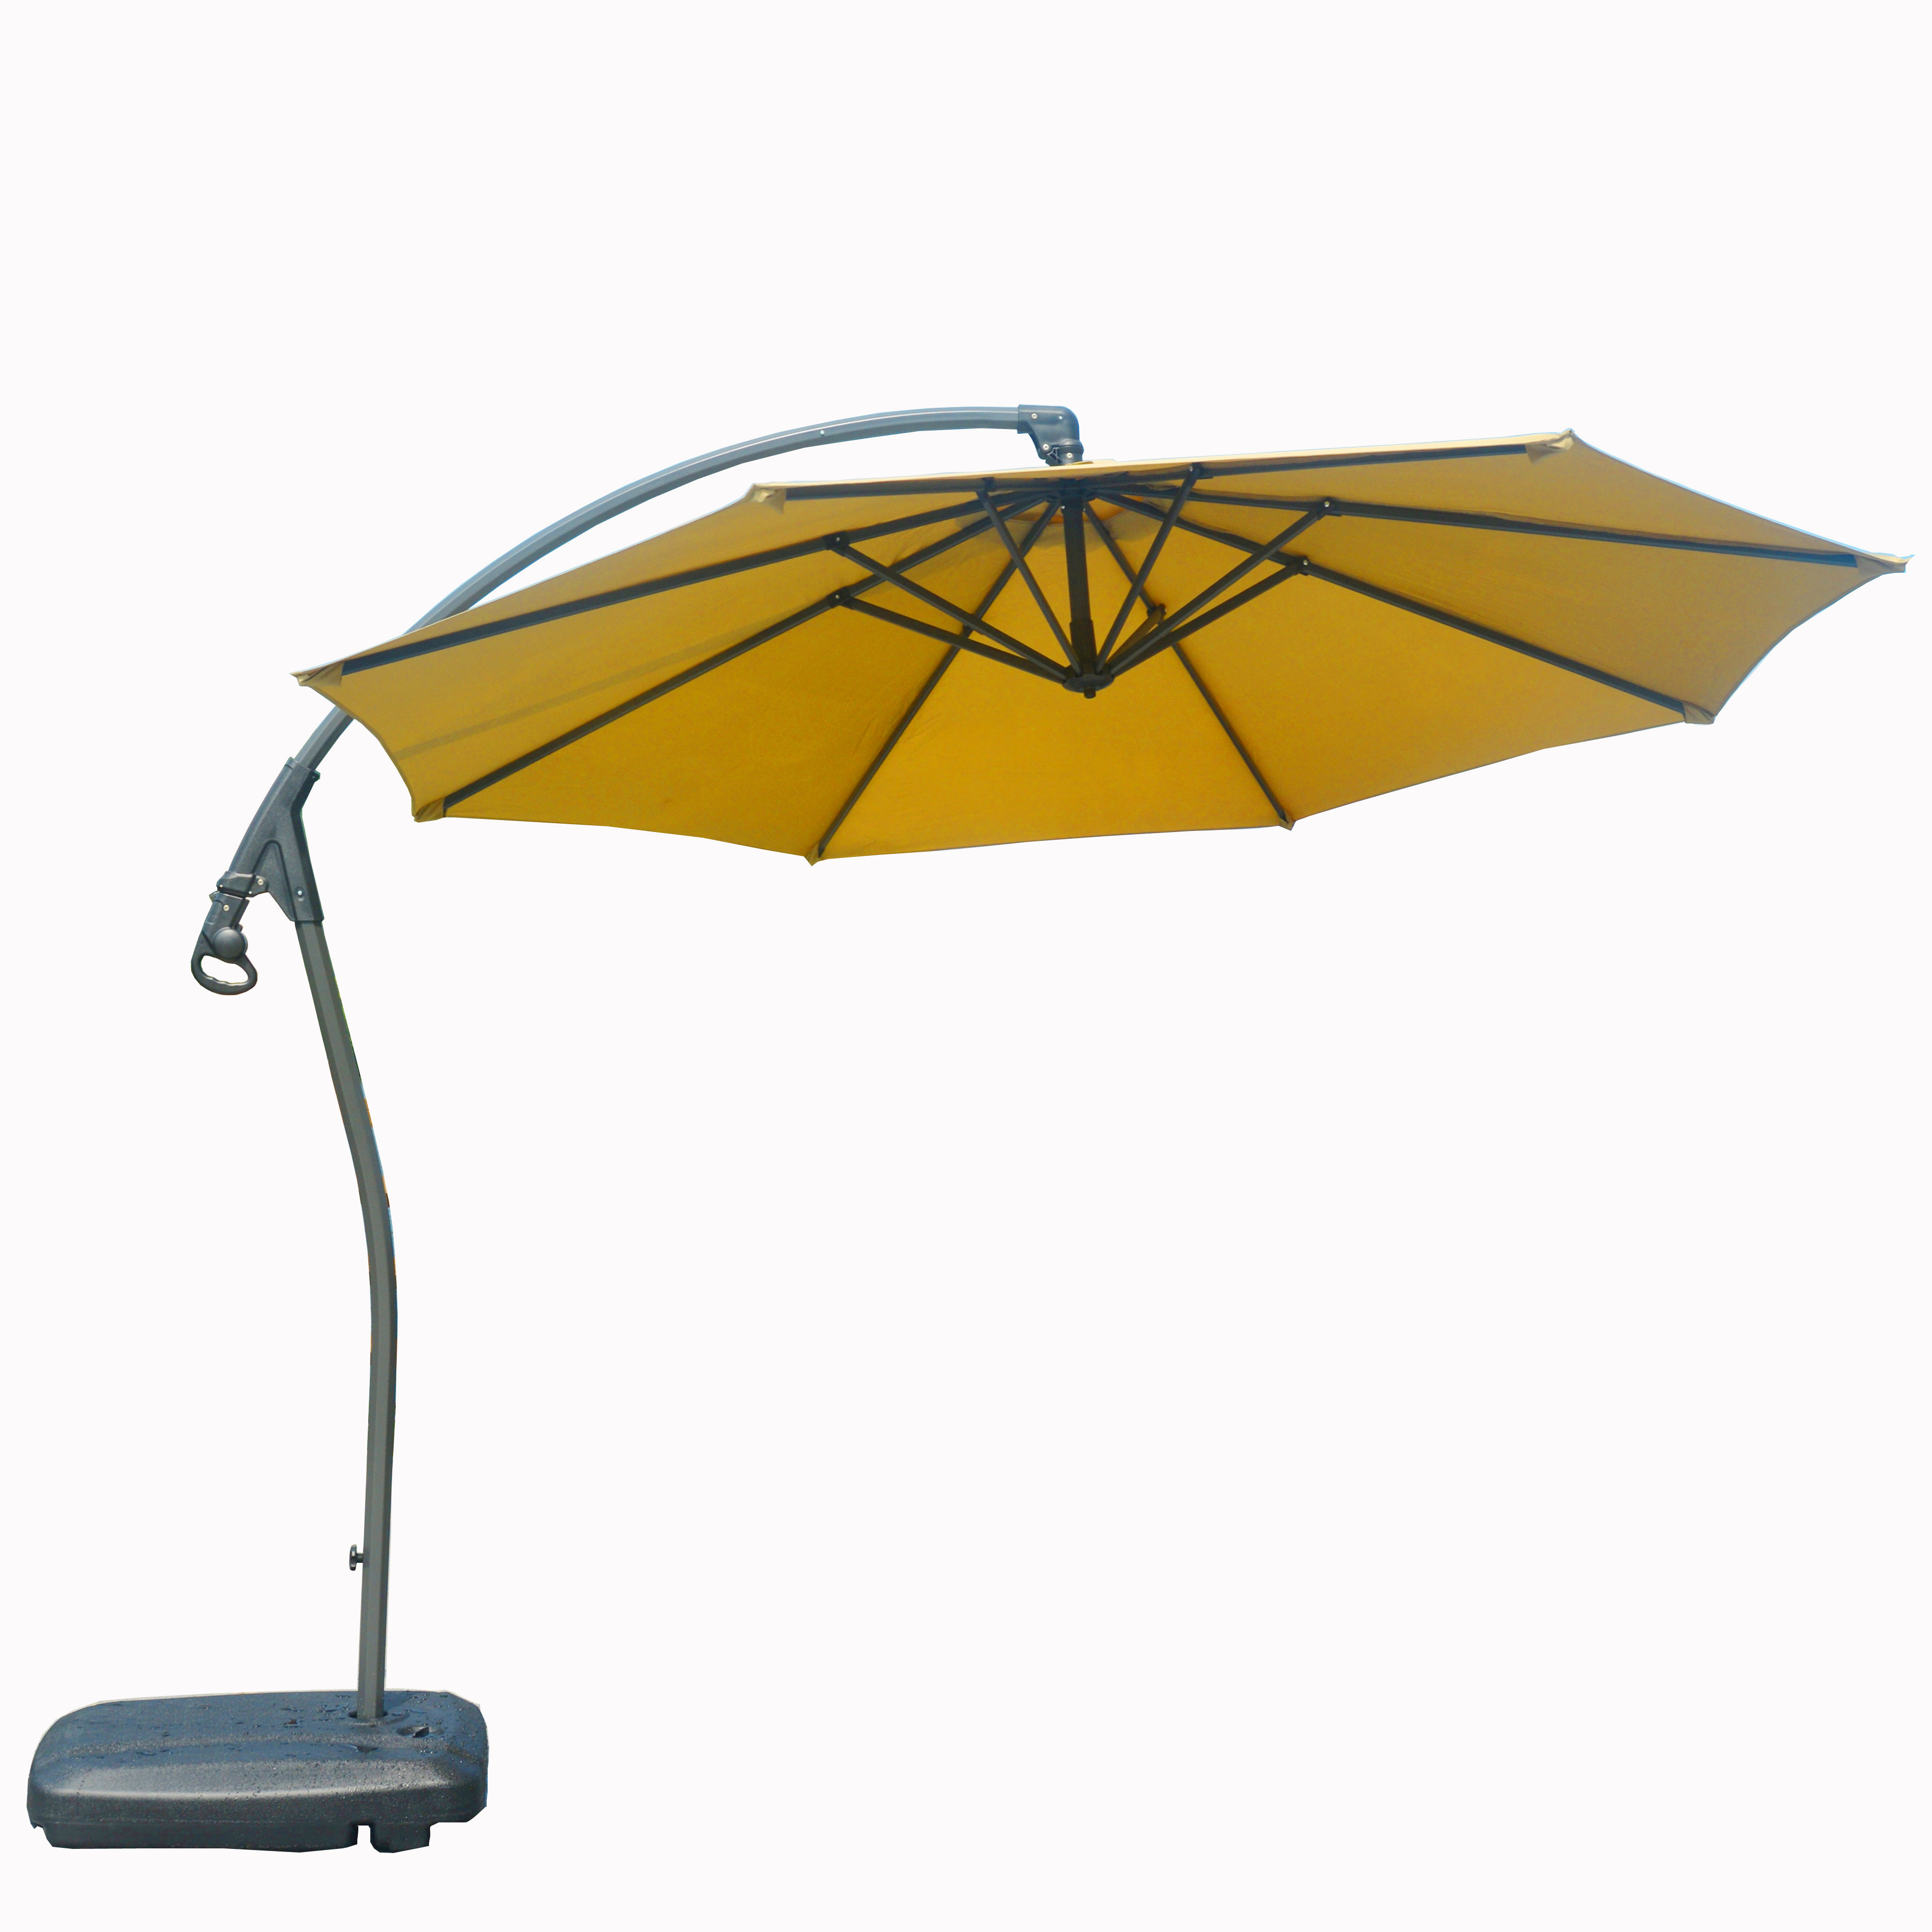 Iyanna Cantilever Umbrellas With Regard To Most Up To Date Hemmer 10' Cantilever Umbrella (Gallery 15 of 20)